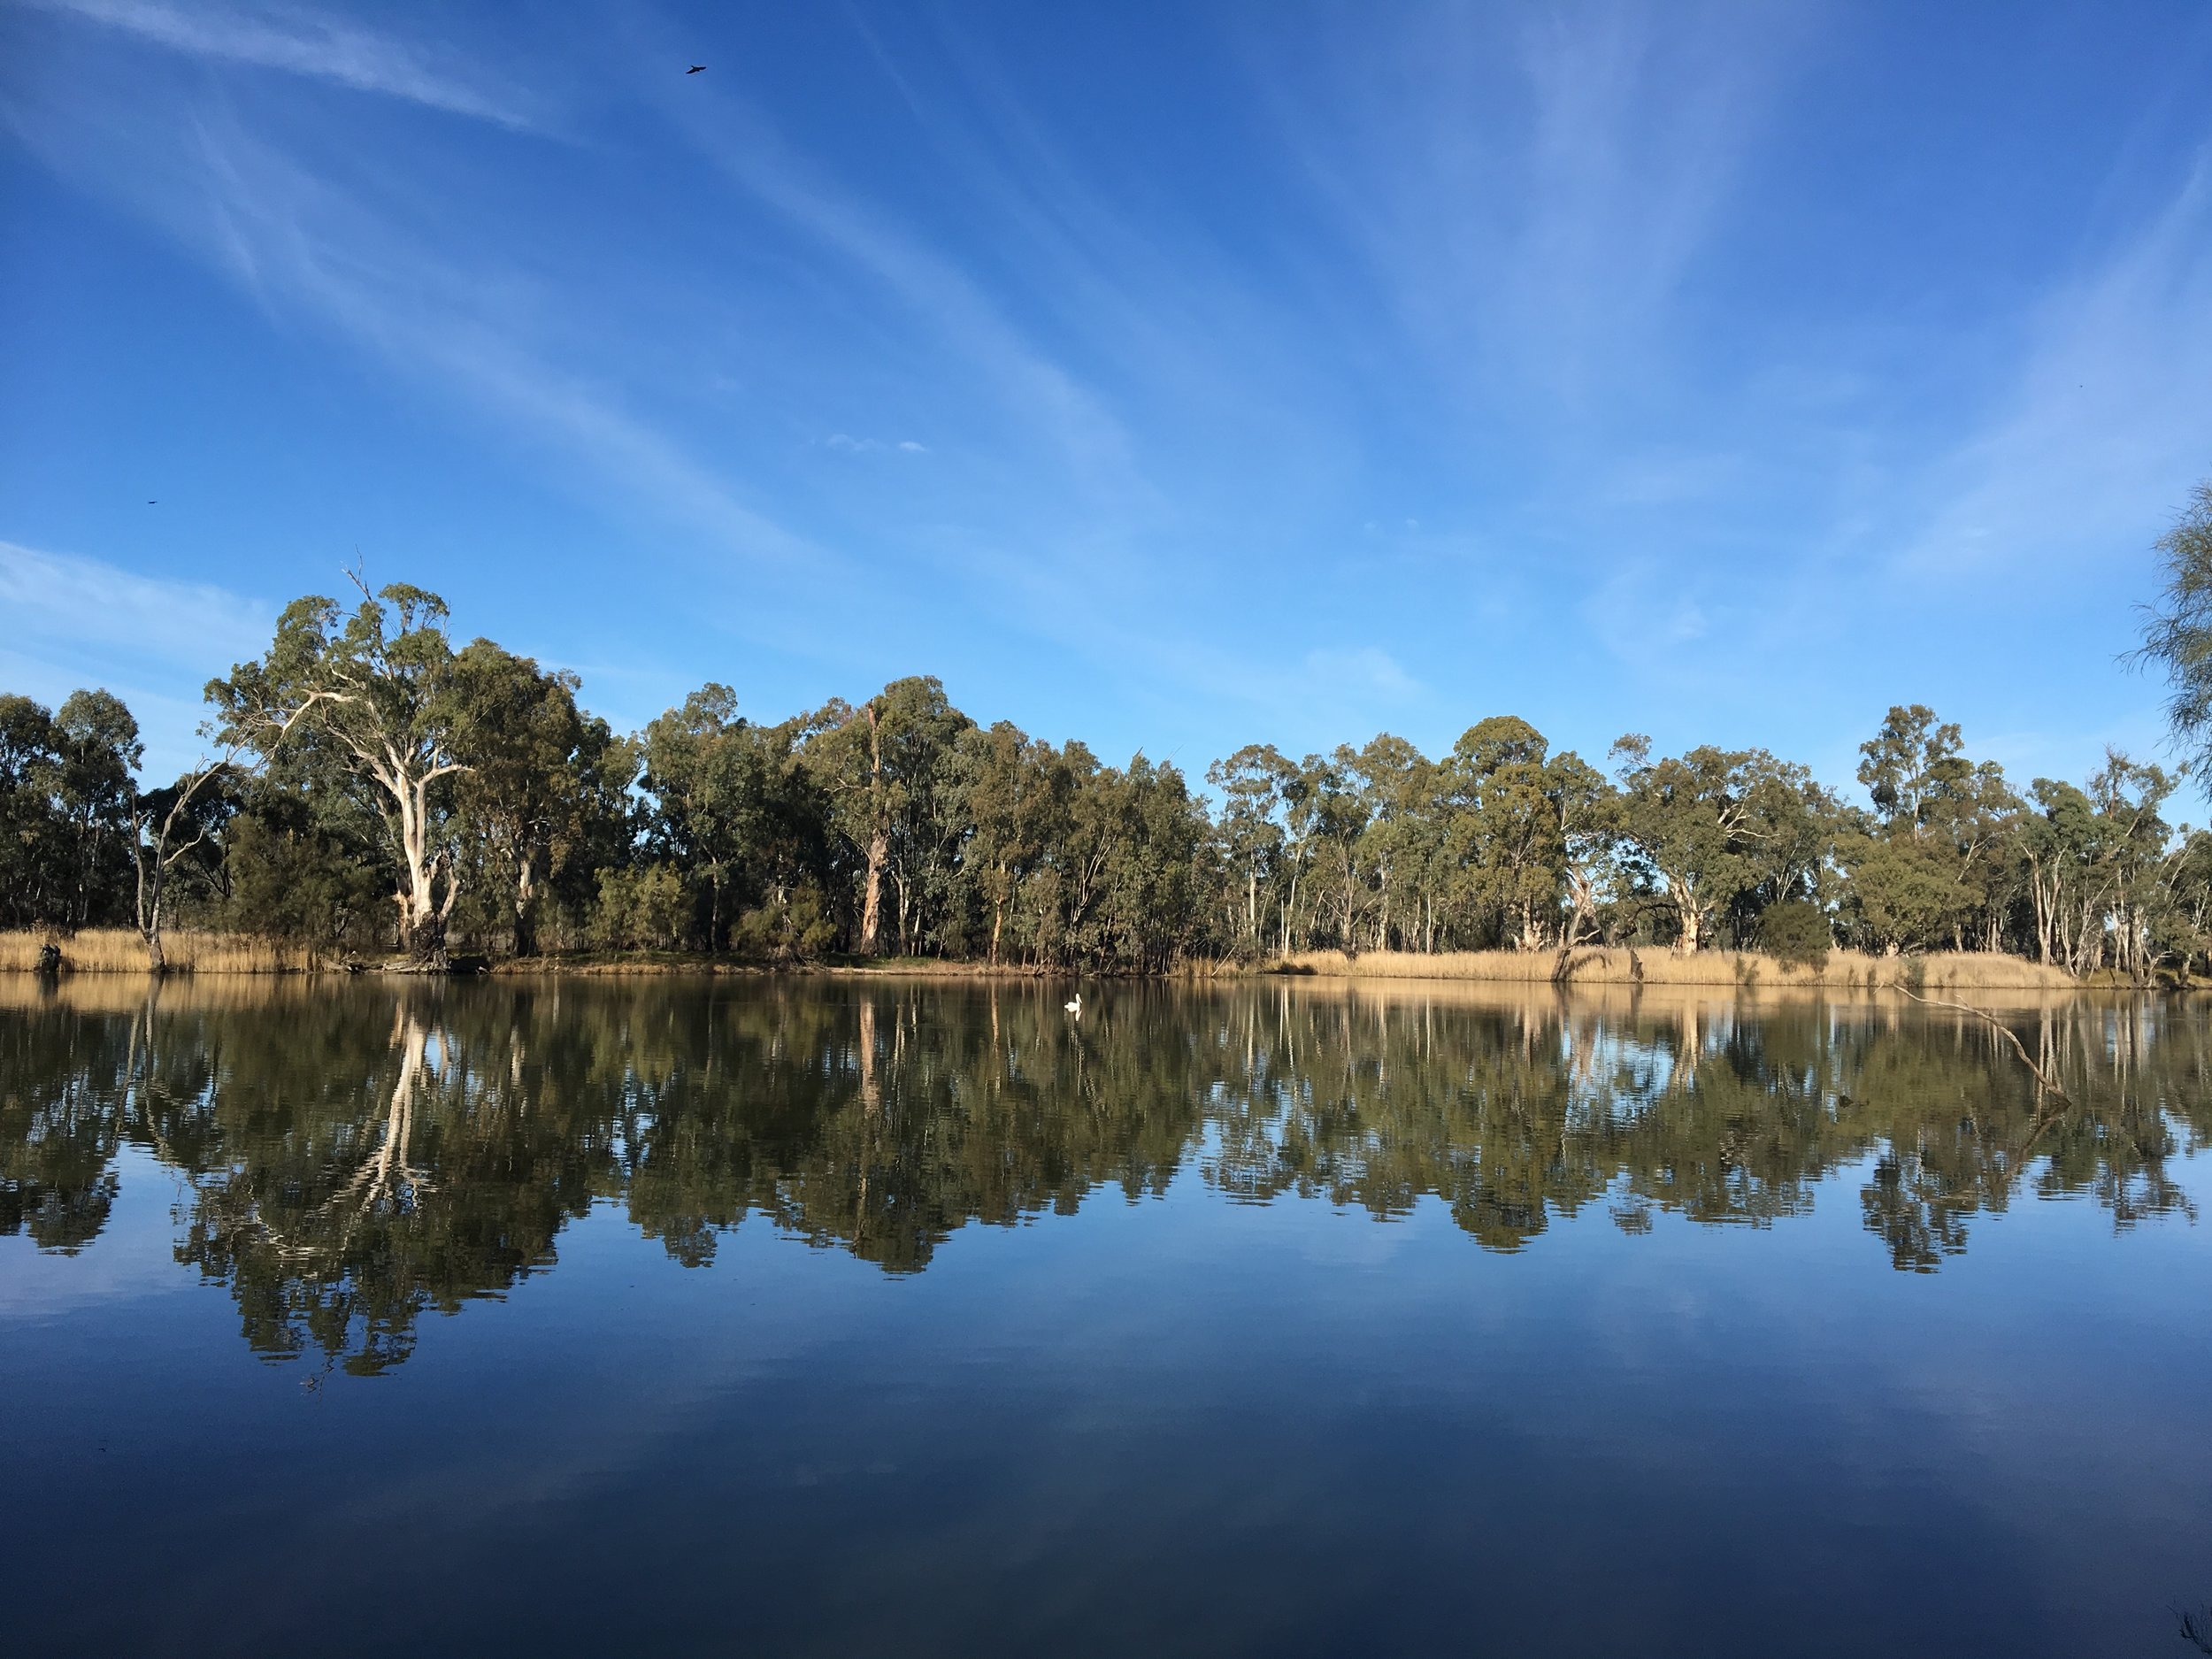 Trentham Estate Winery & Local Wetland Tour